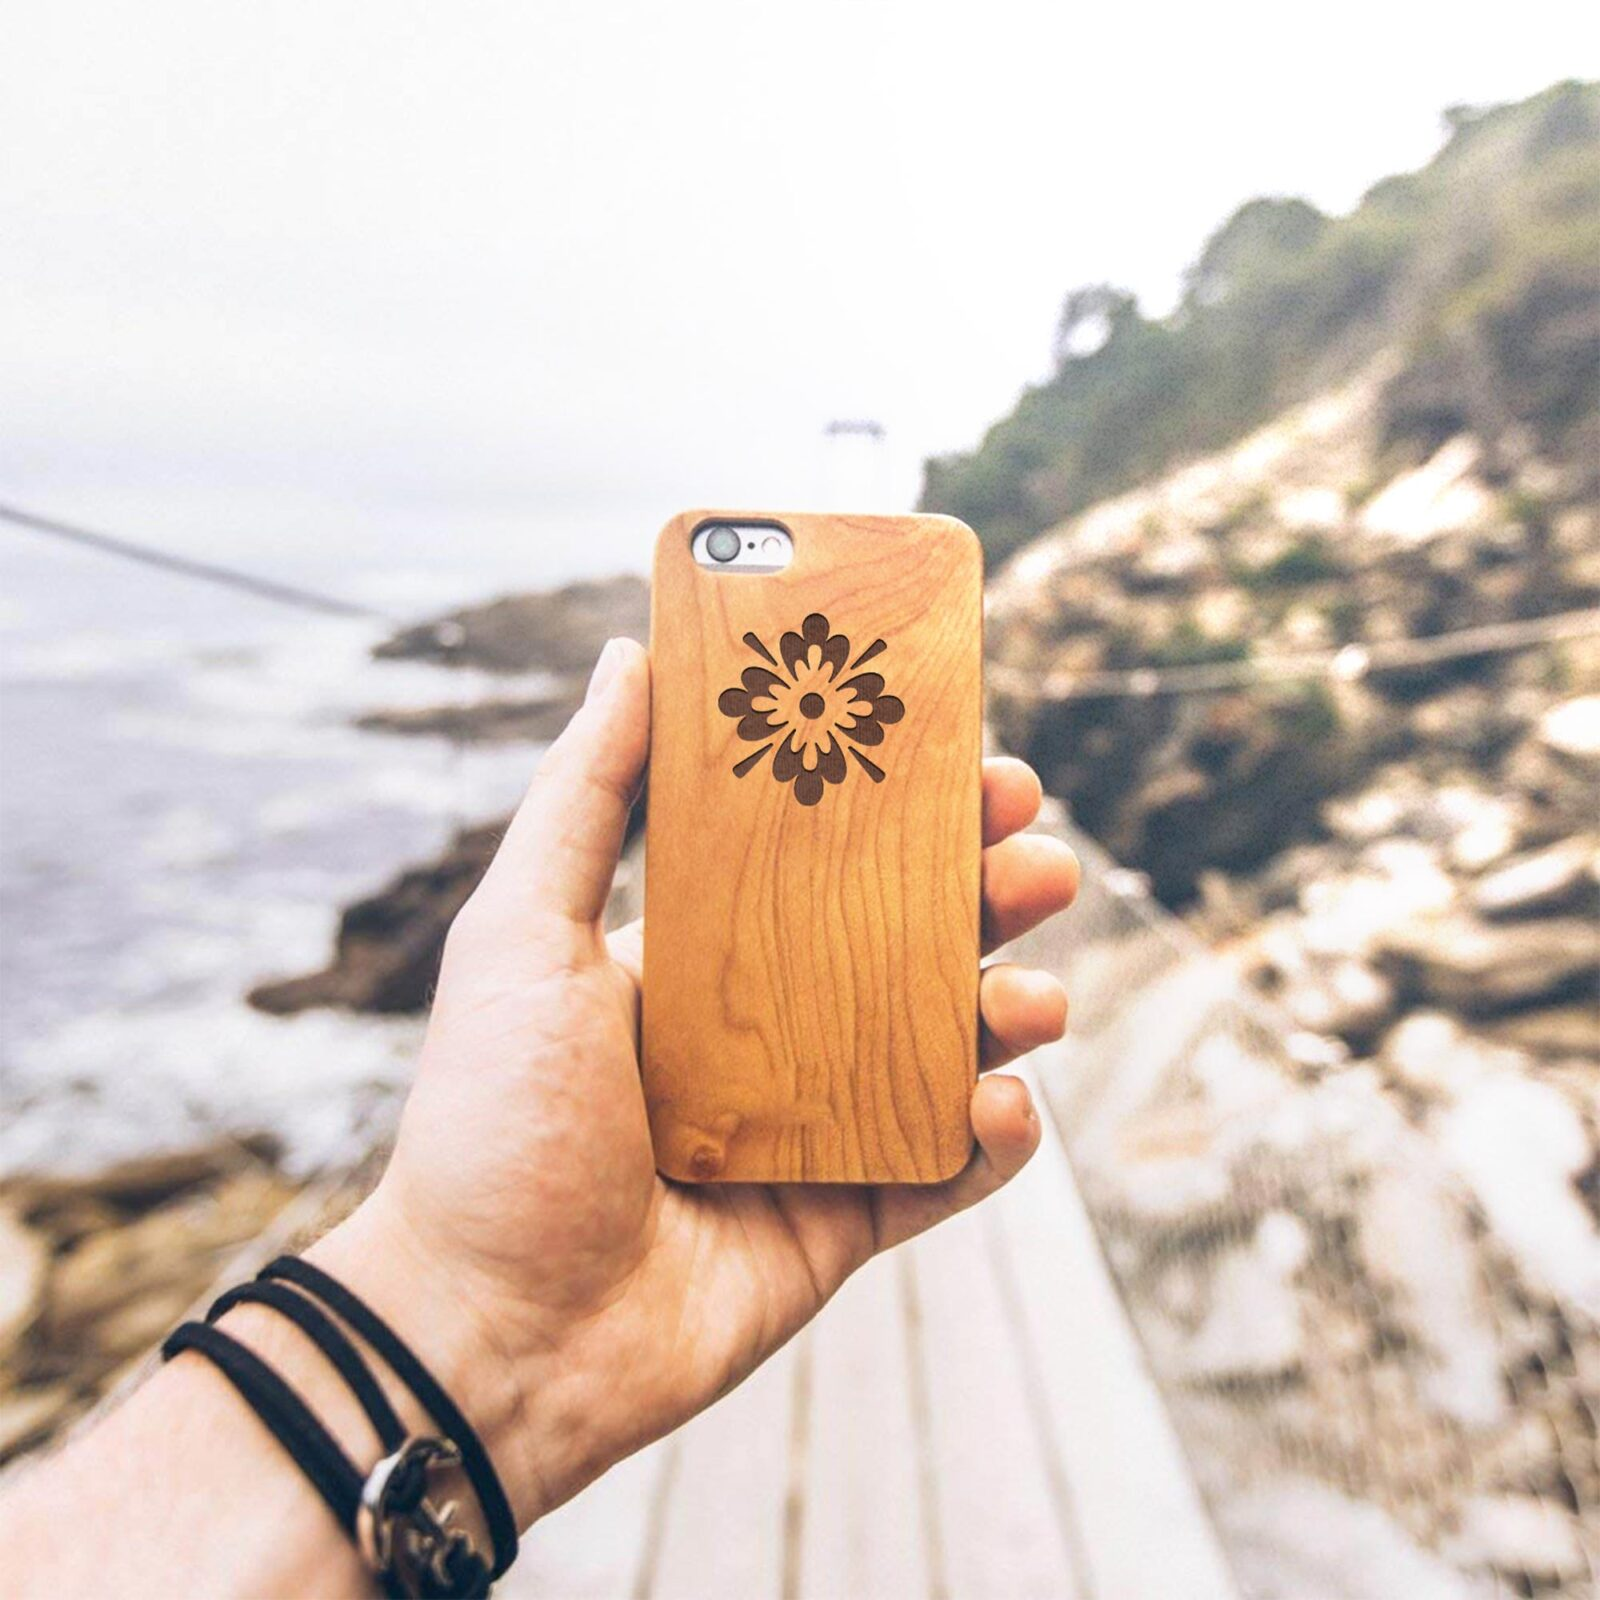 Wooden Texture Mobile Cover Mockup